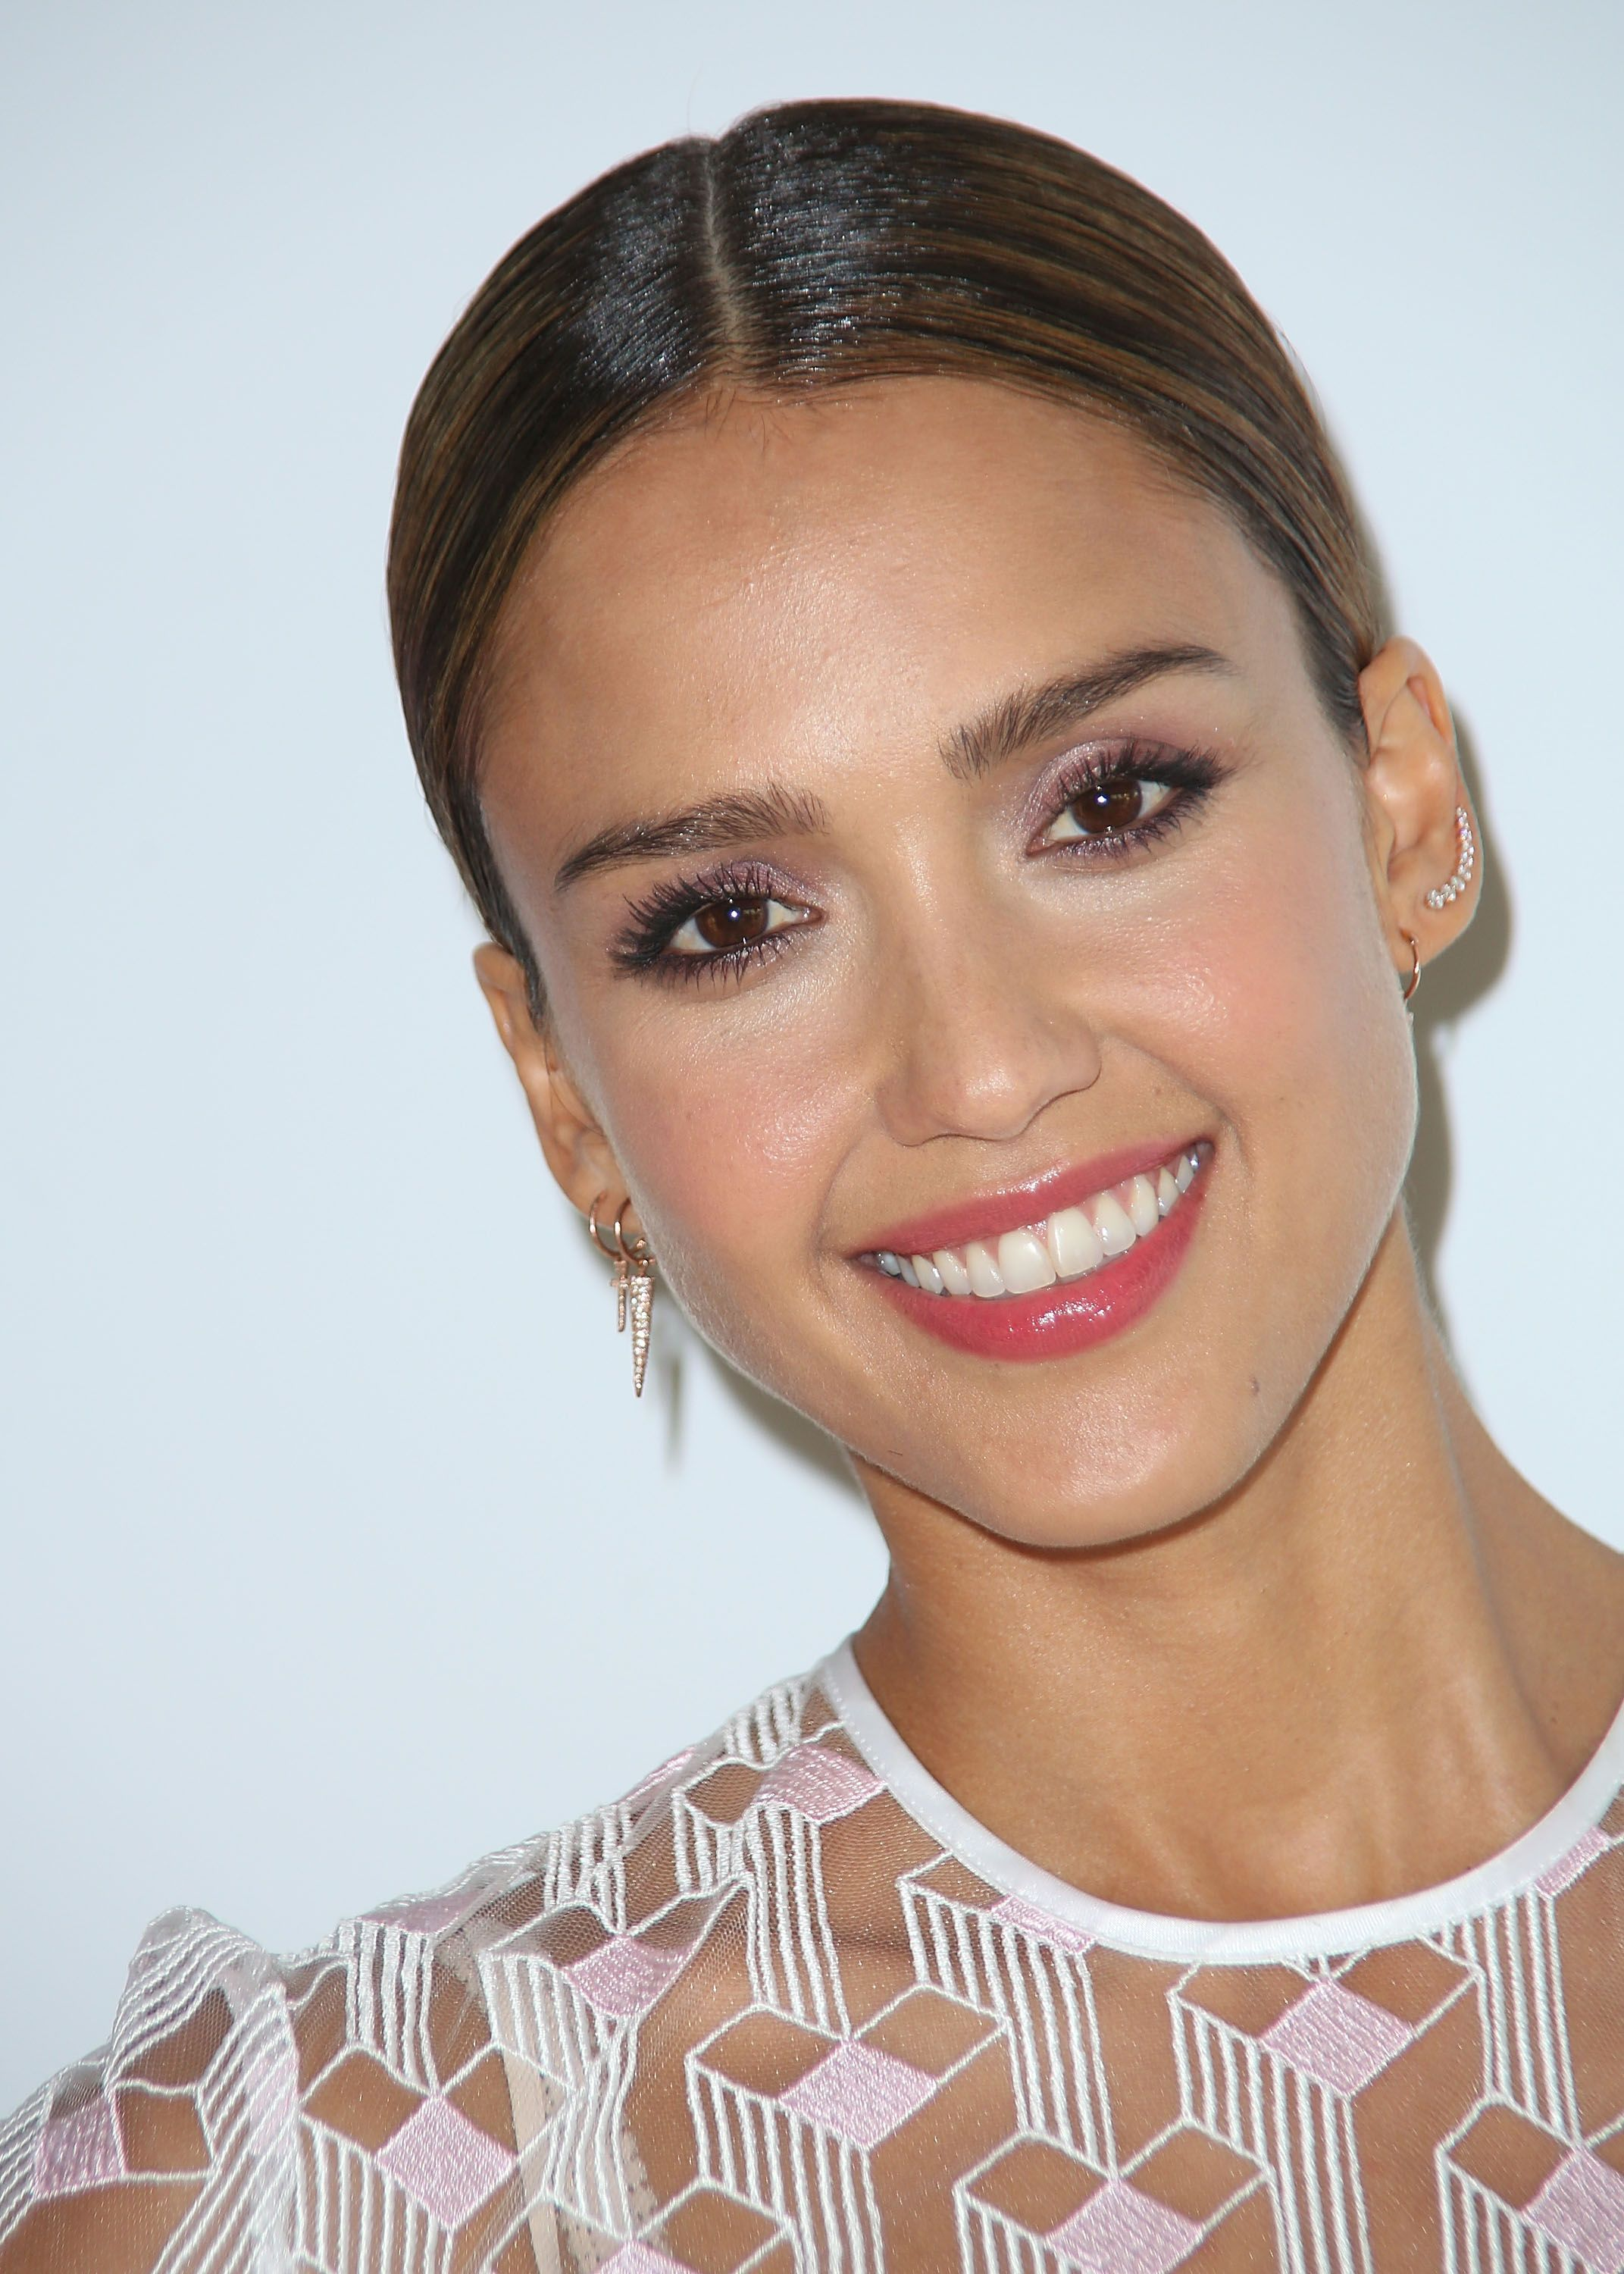 The 25 Best Thick Eyebrows in Hollywood (And How to GetThem)